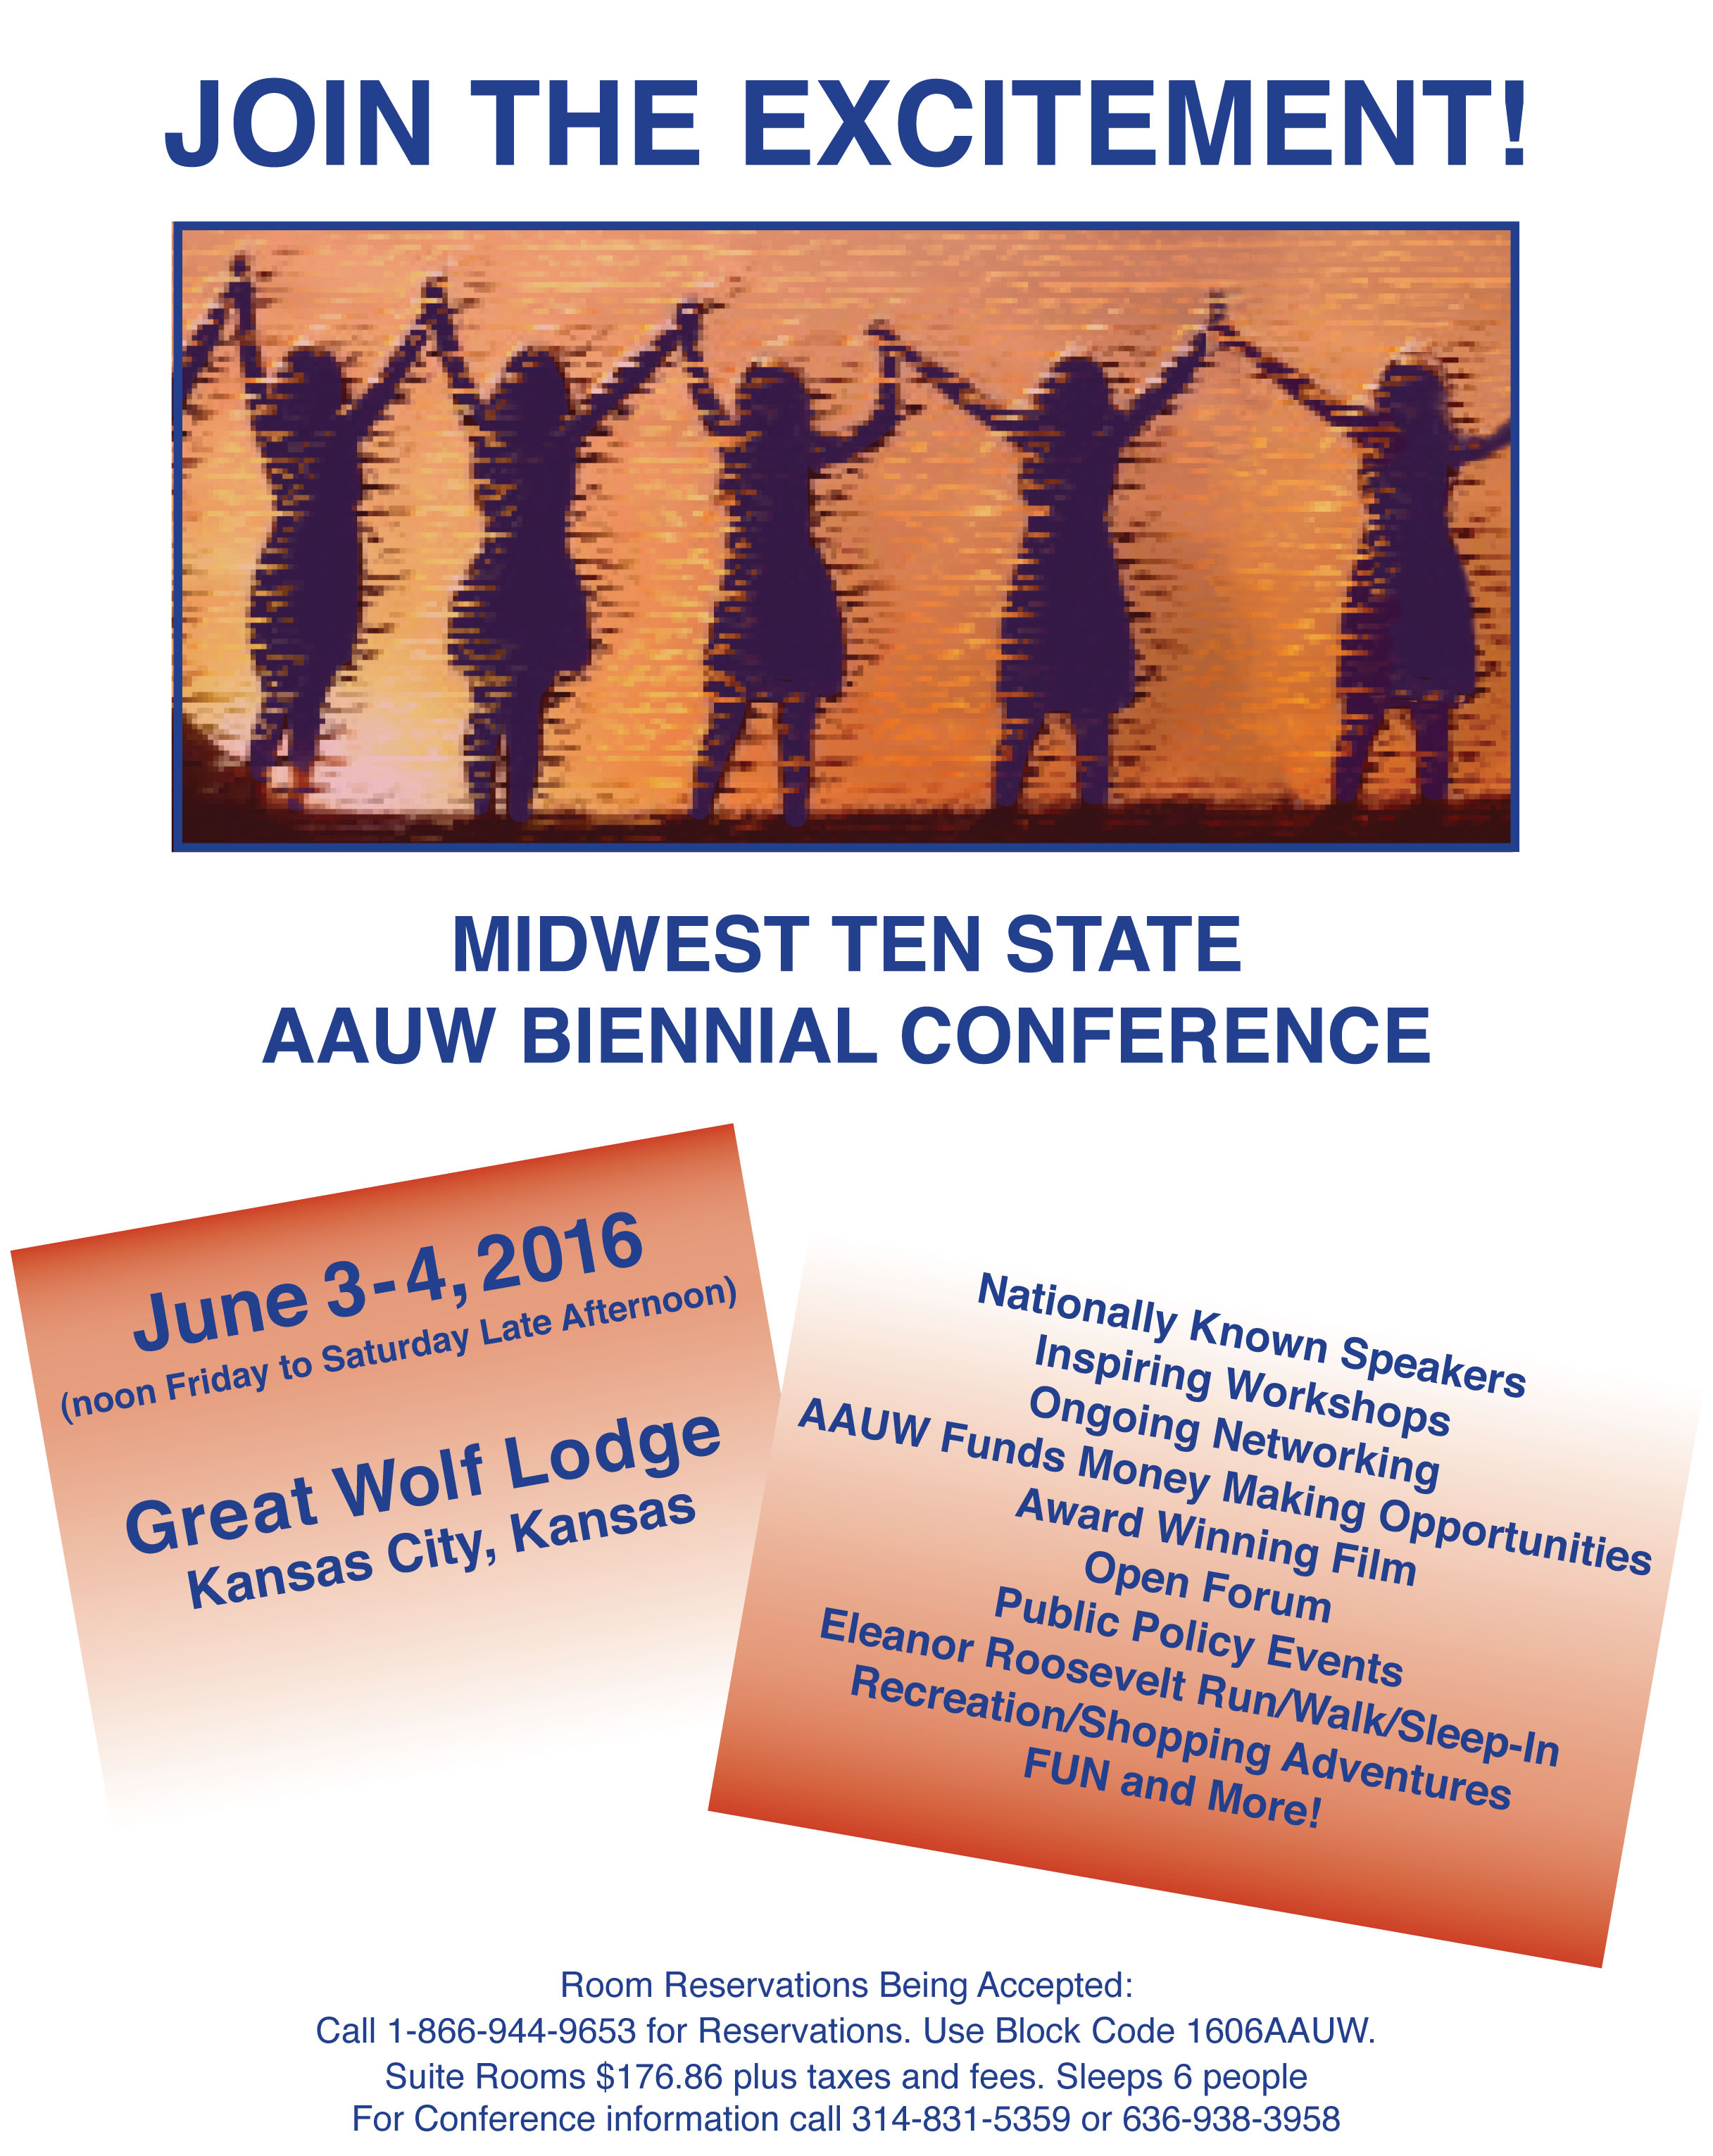 AAUW Midwest Regional Conference Flyer